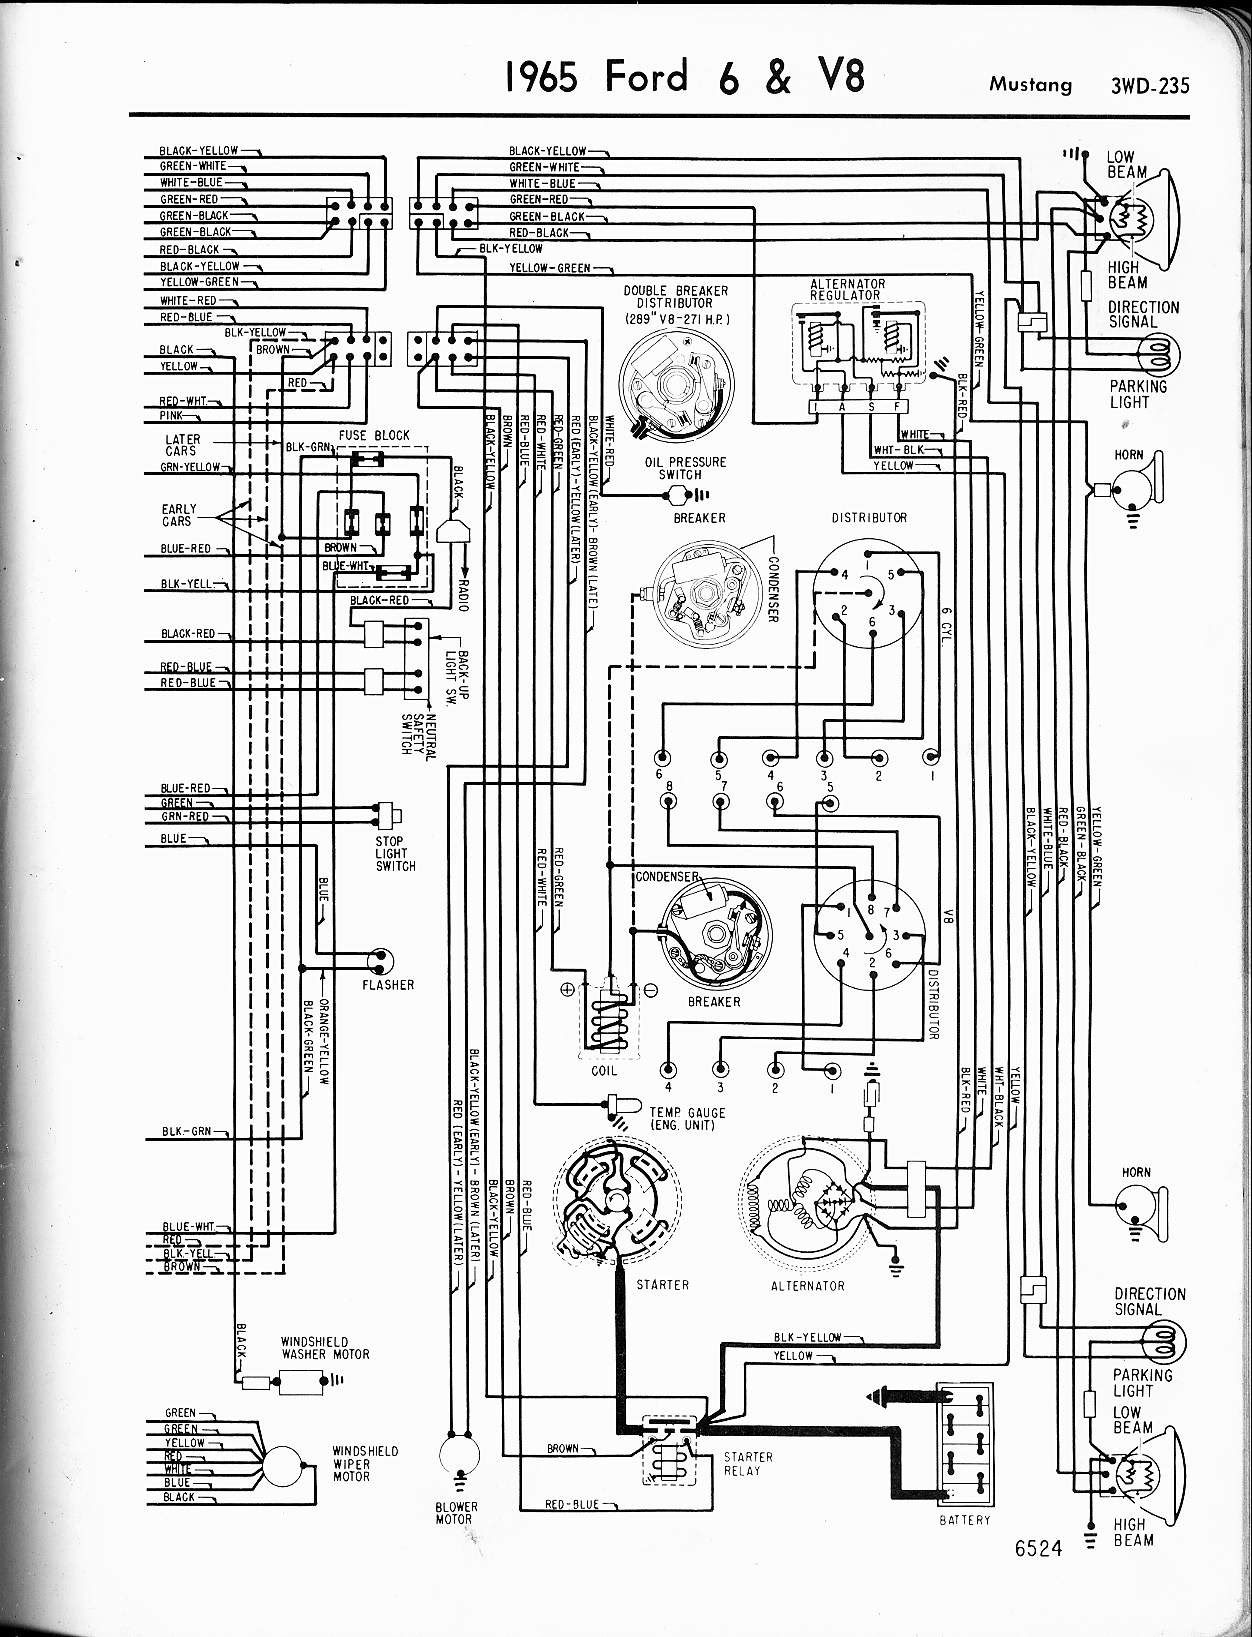 triumph bonneville t120 1969 restoration  u0026gt  u0026gt    wiring diagram triumph  u00bb adapter car